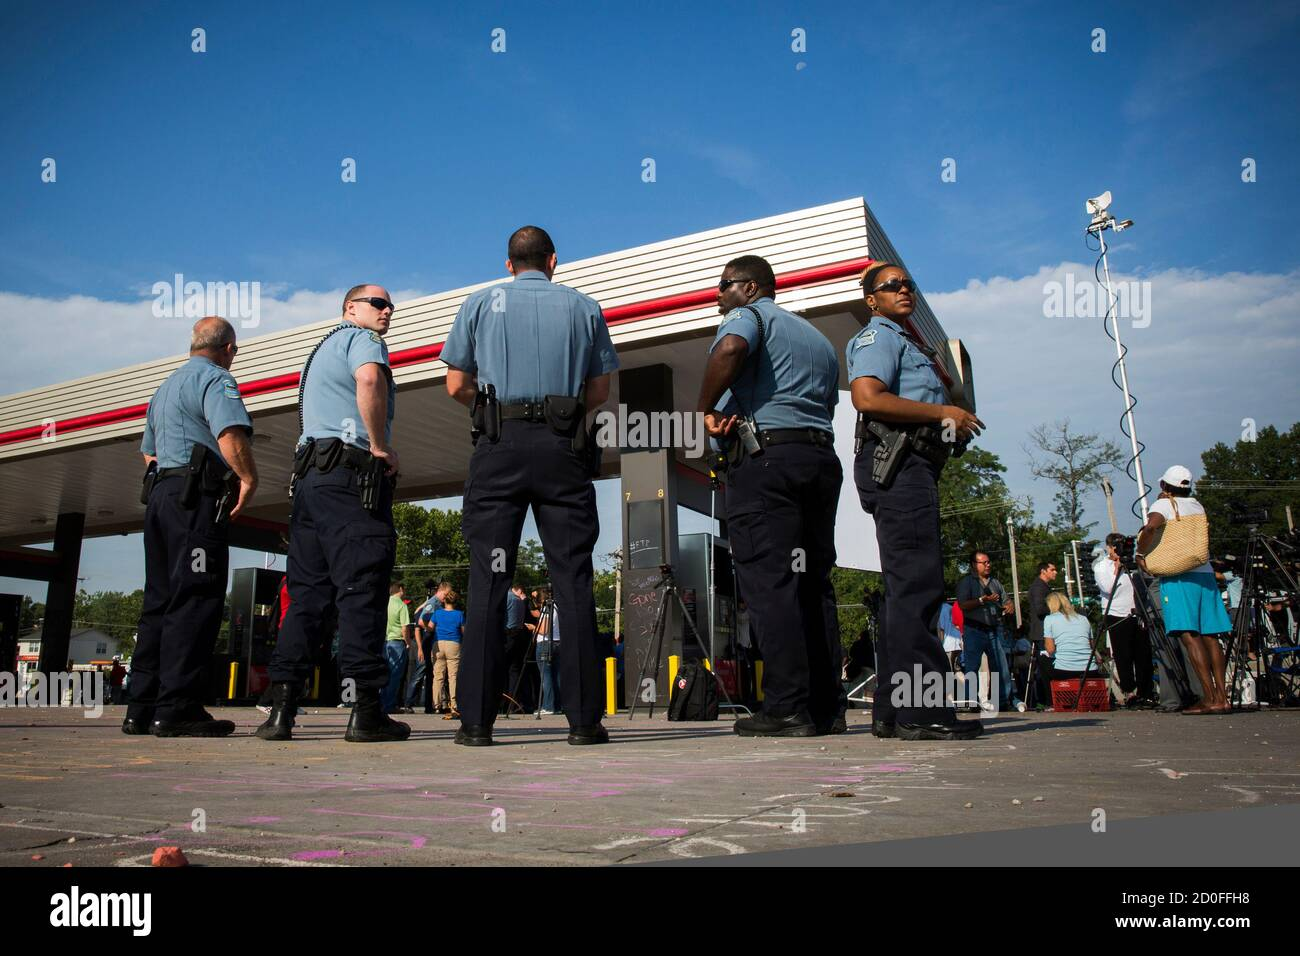 Police officers stand by after the announcement of the name of the officer involved in the shooting of Michael Brown in Ferguson, Missouri August 15, 2014. Police Chief Thomas Jackson on Friday identified Darren Wilson as the police officer who fatally shoot an unarmed black teenager, which led to days of sometimes-violent demonstrations. Jackson announced the name at a press conference held near a QuikTrip convenience store that had been burned amid protests over the shooting of Brown, 18, last Saturday.  REUTERS/Lucas Jackson (UNITED STATES - Tags: CIVIL UNREST CRIME LAW) Foto Stock